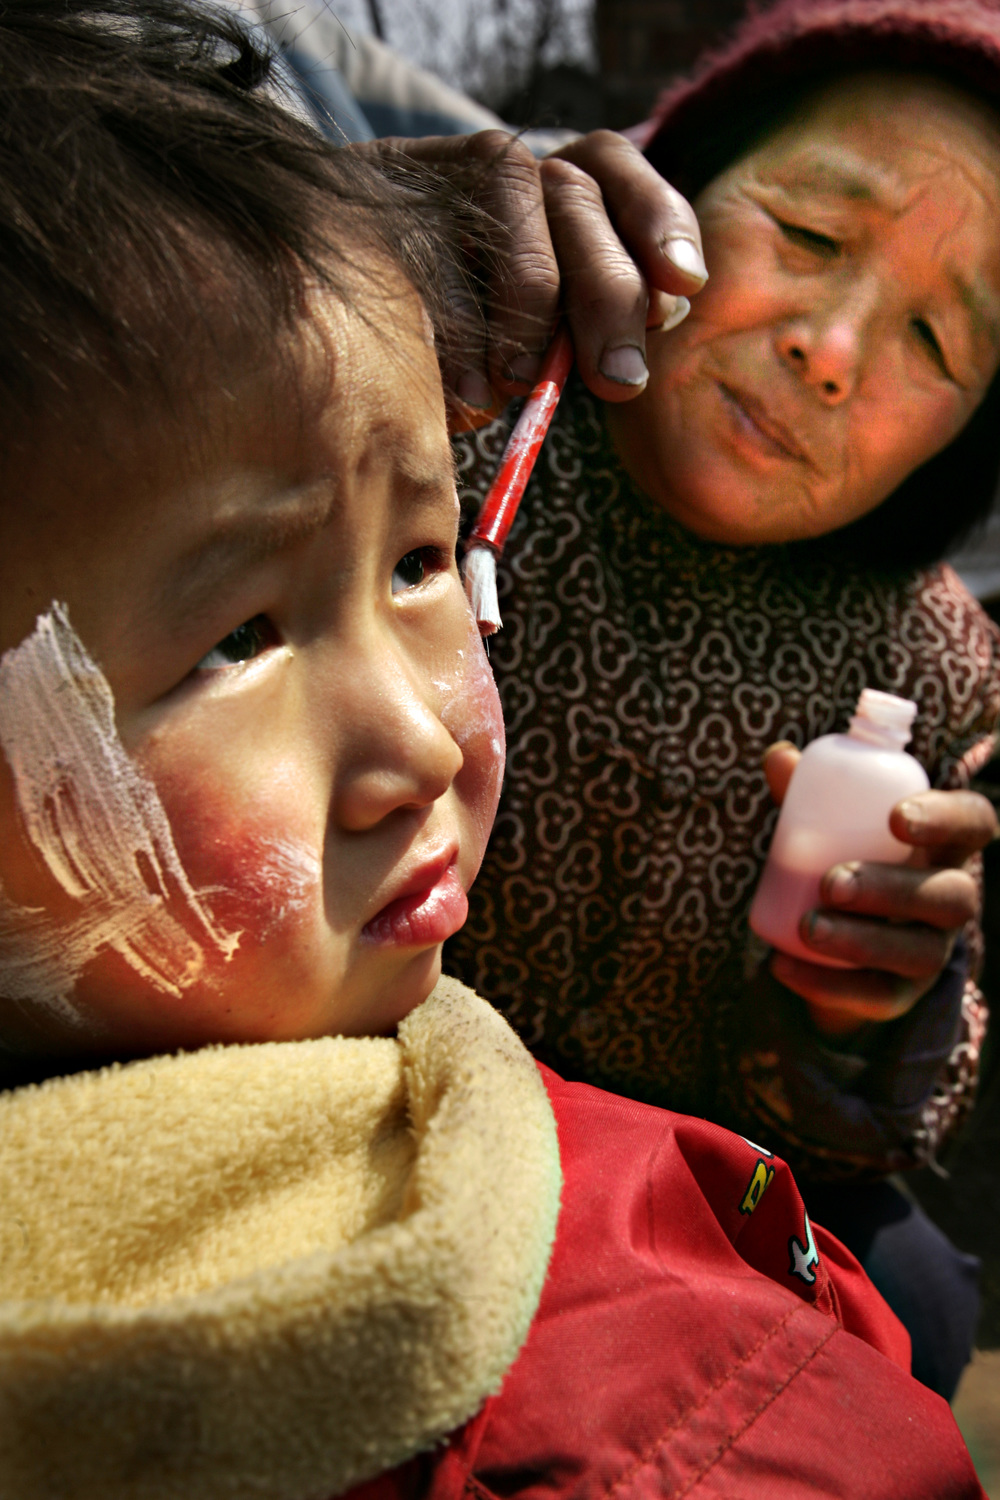 Jia Jiale has lotion applied to her face by her grandmother to treat rashes that have recently appeared. She has lived in other villages and never had any health problems but soon after she moved with her family to Sunying, she began developing itchy rashes all over her body.